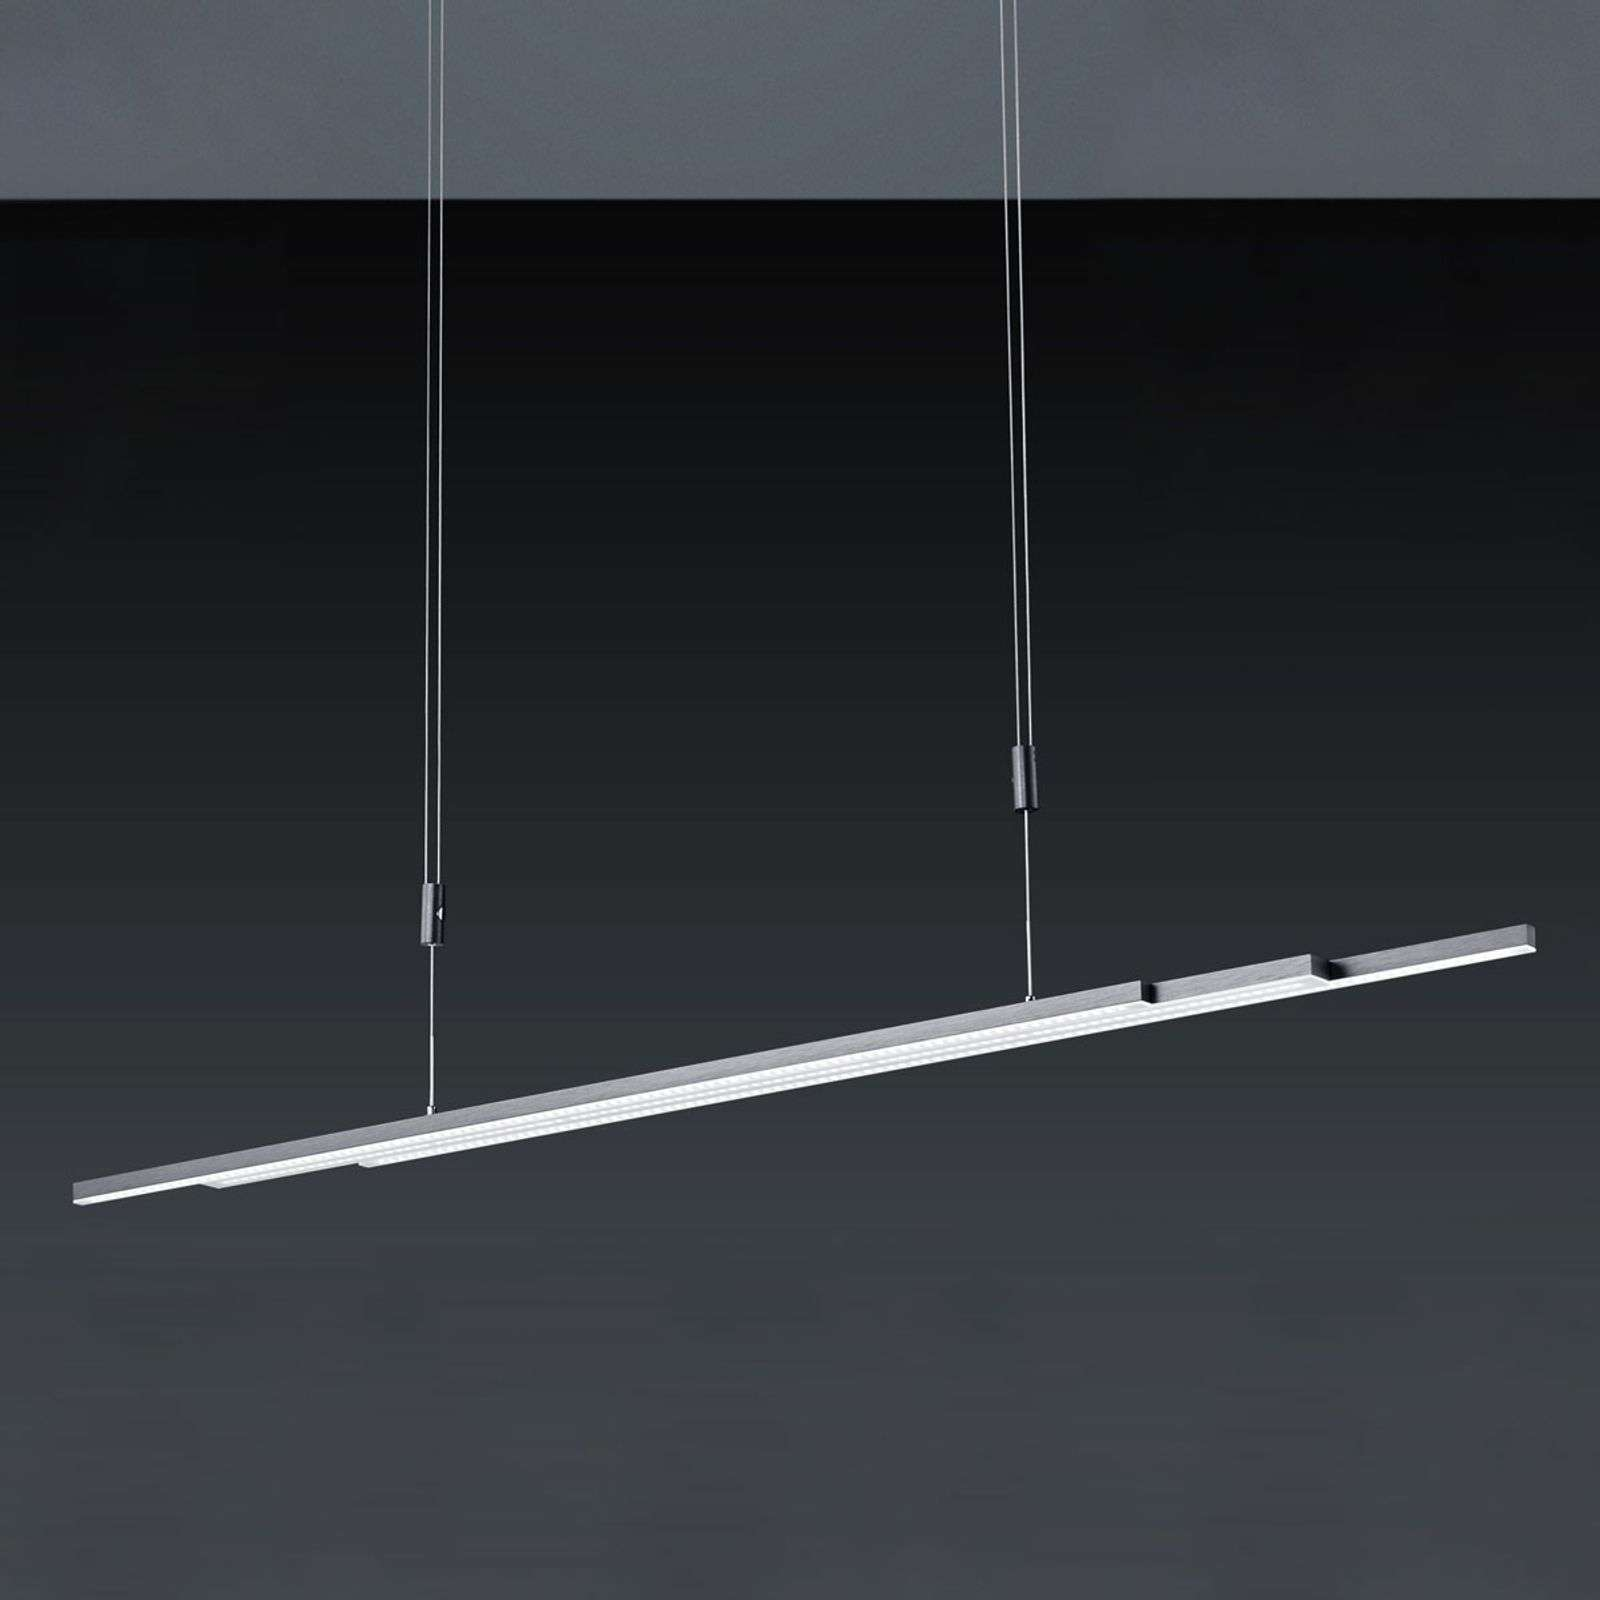 BANKAMP L-lightLINE LED-hanglamp, antraciet